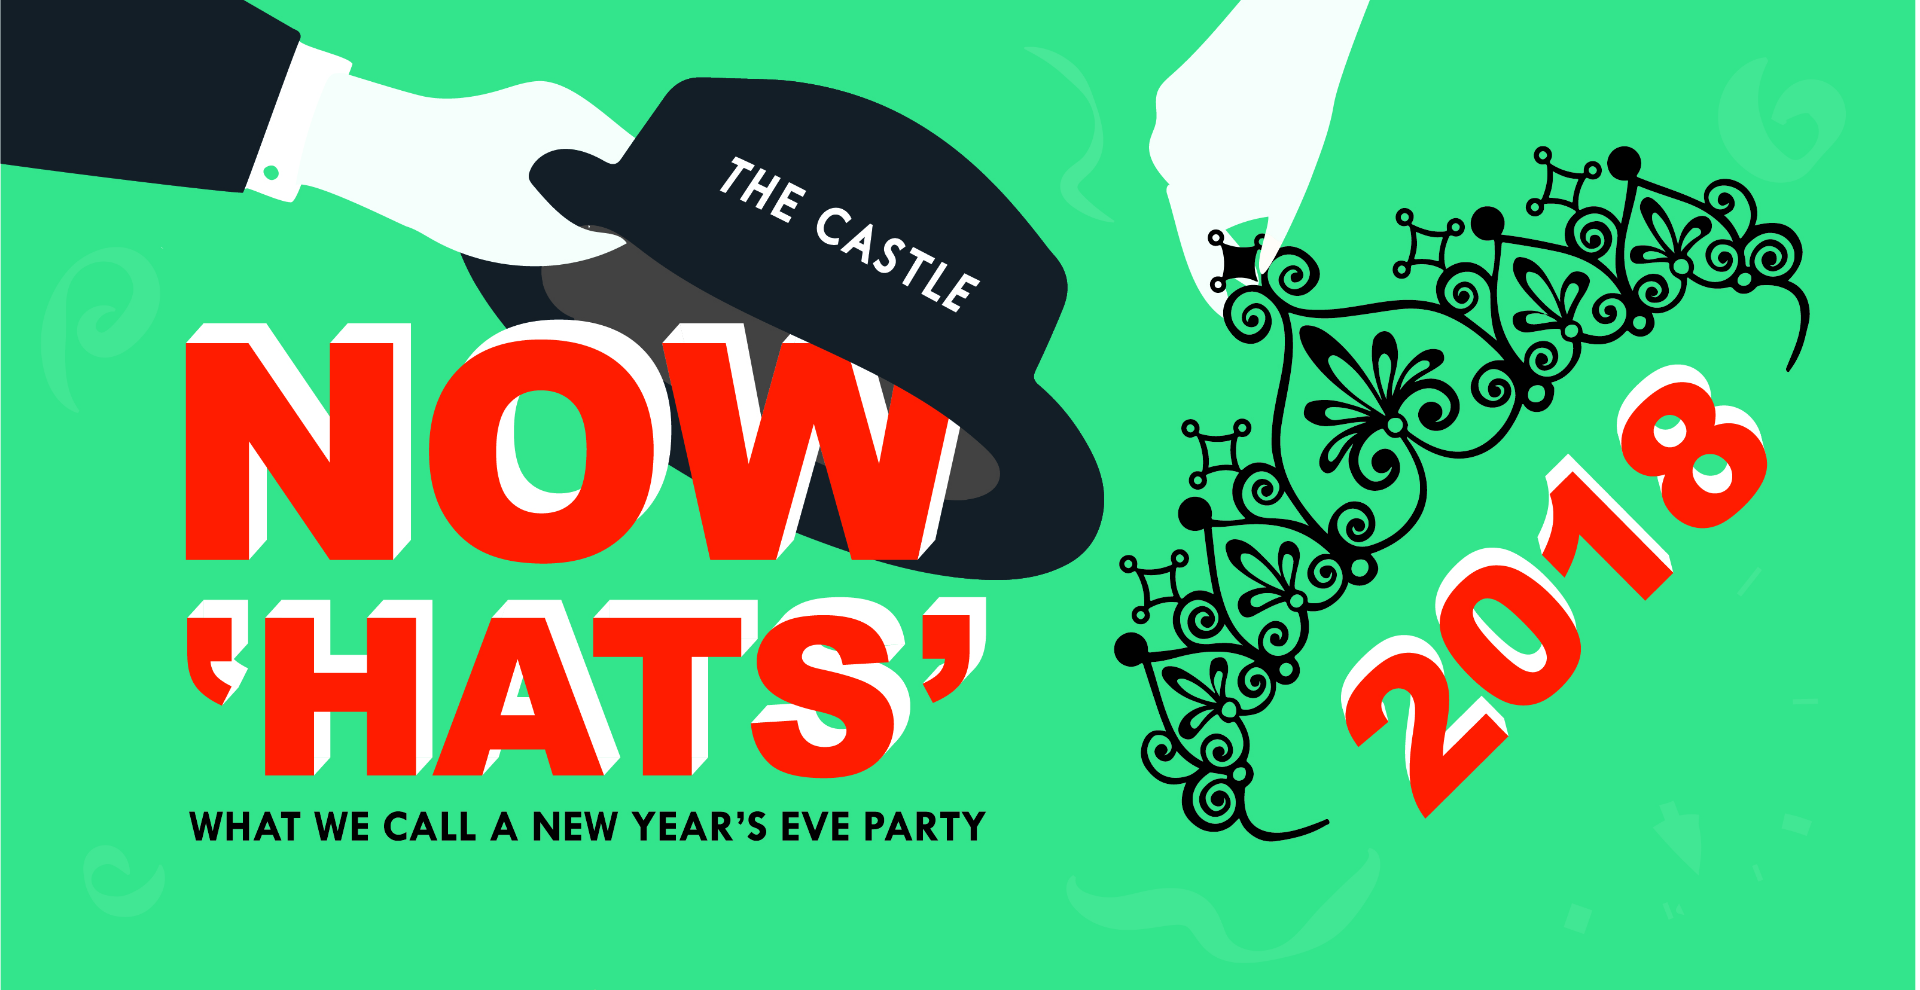 Now 'HATS' what we call a New Year's Eve Party